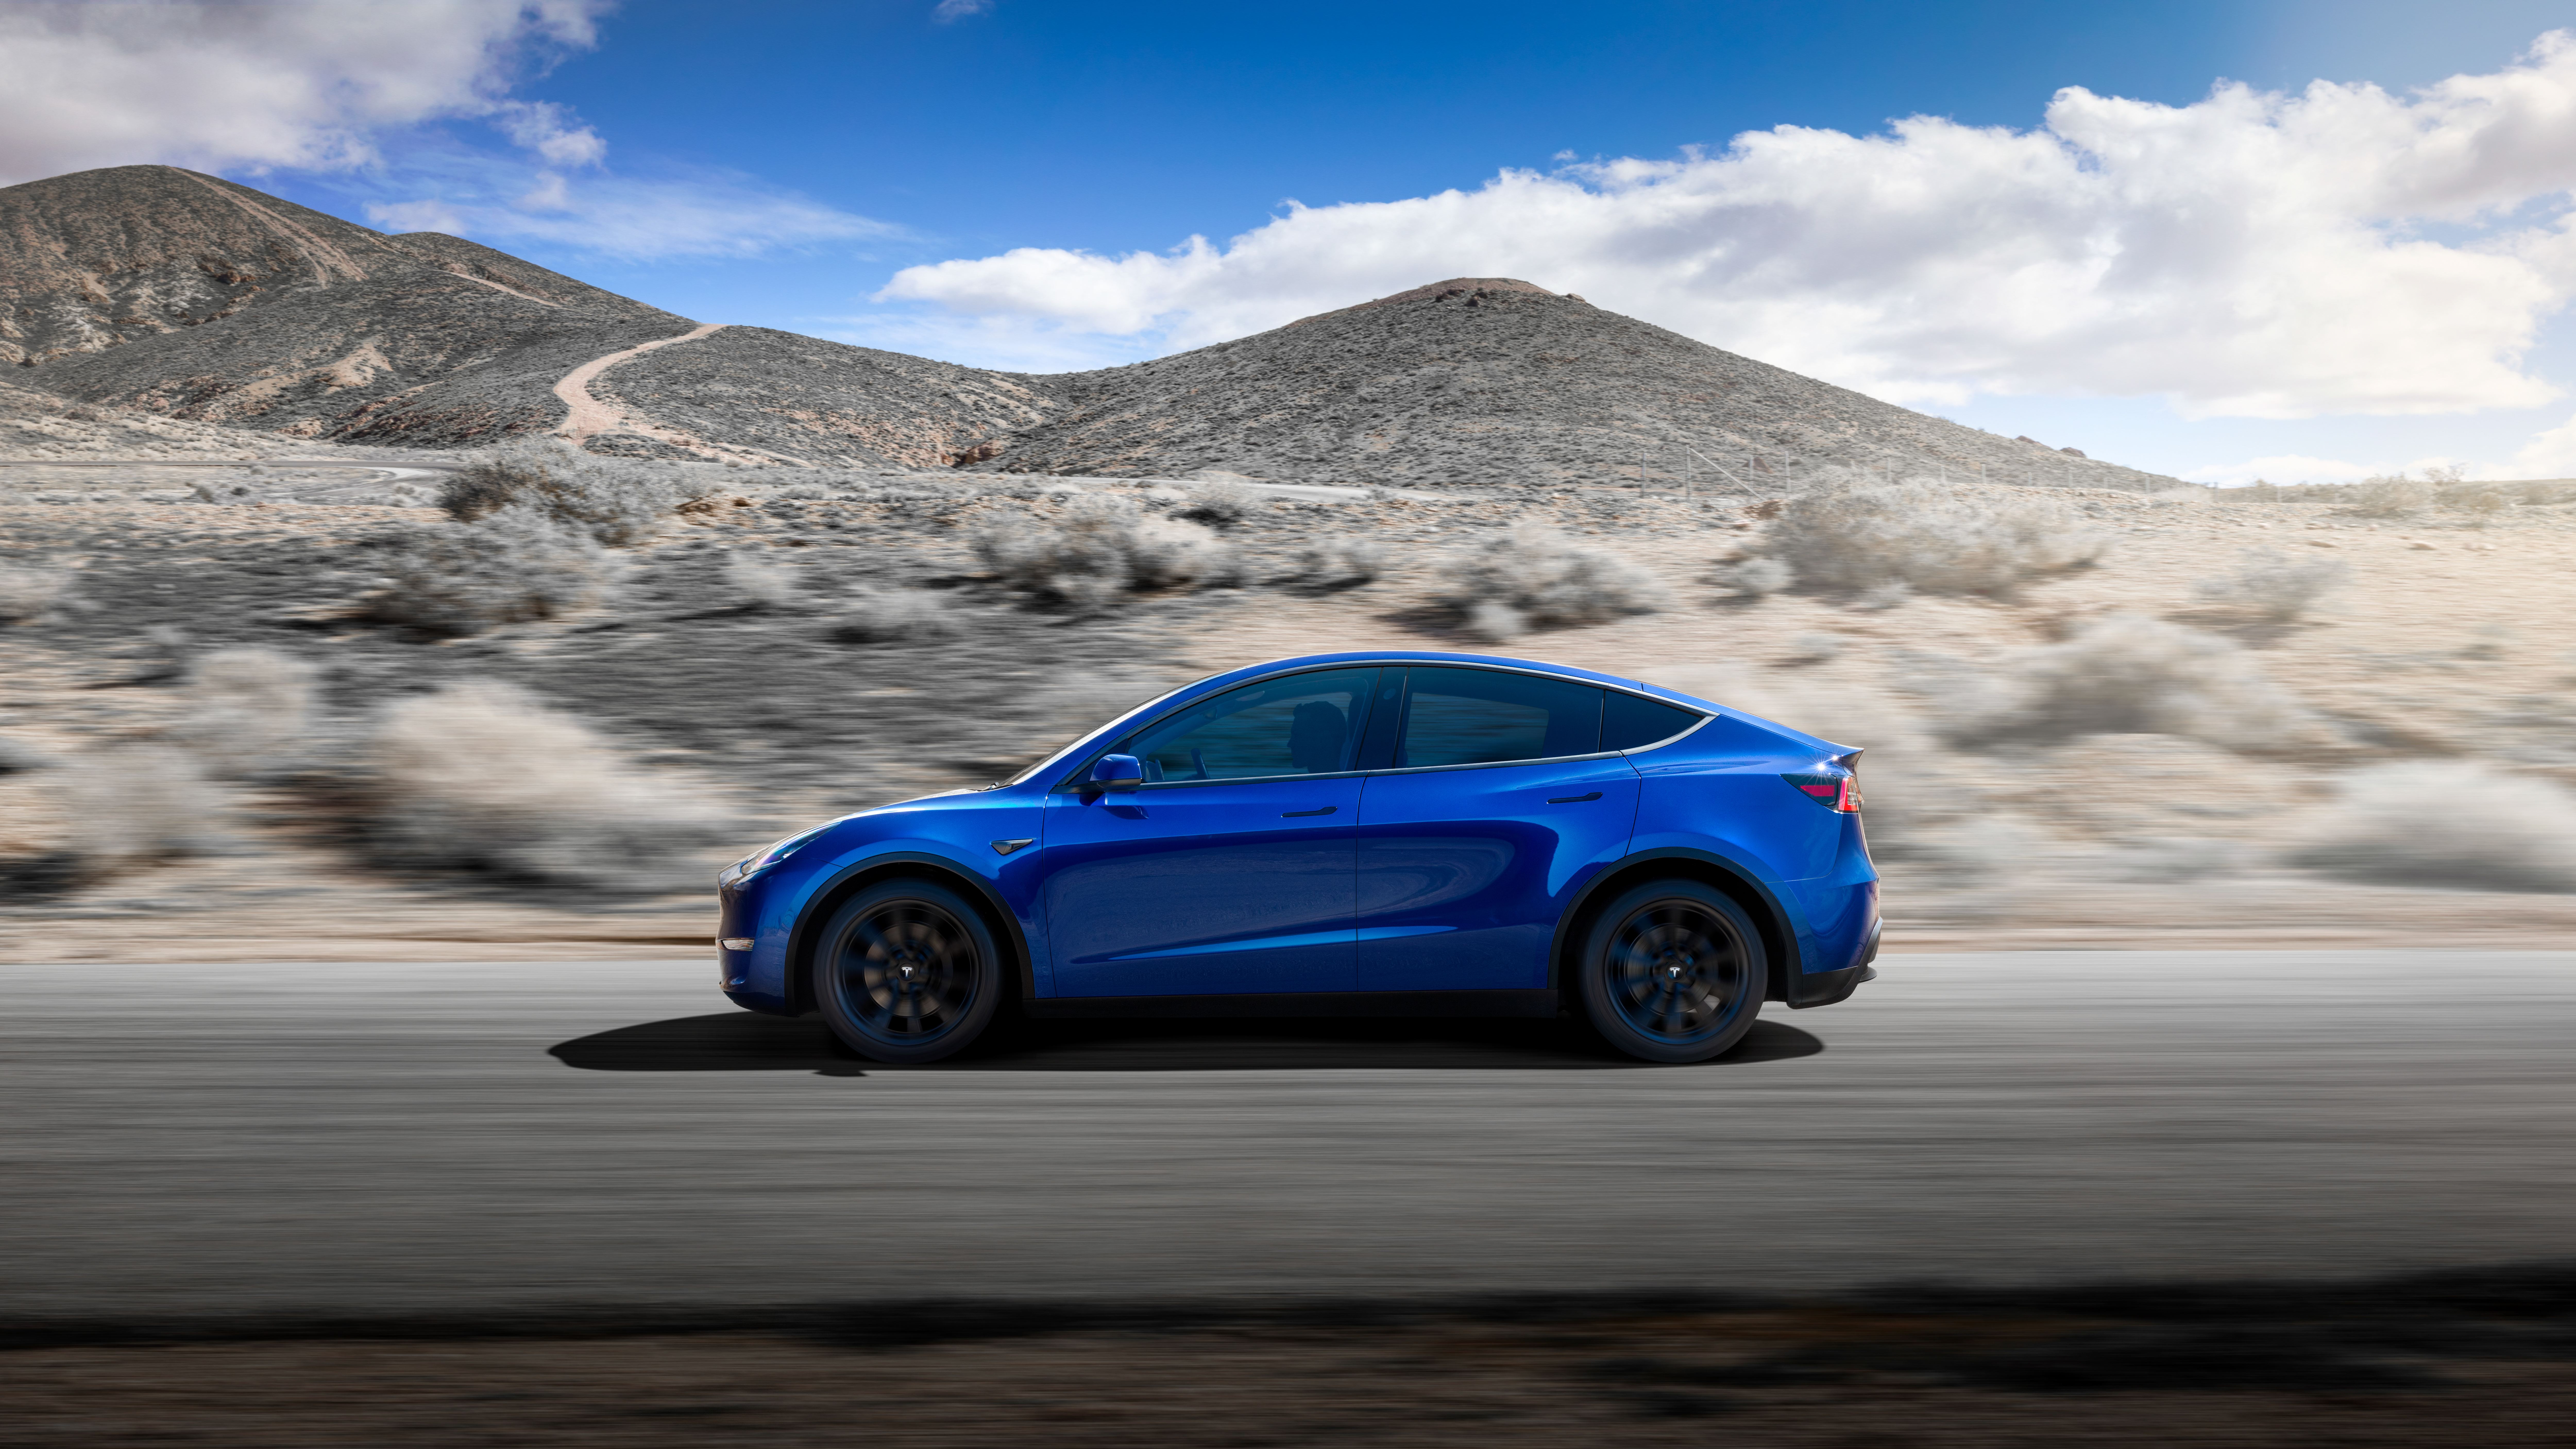 The Tesla Model Y will have a tow bar for all-electric adventures